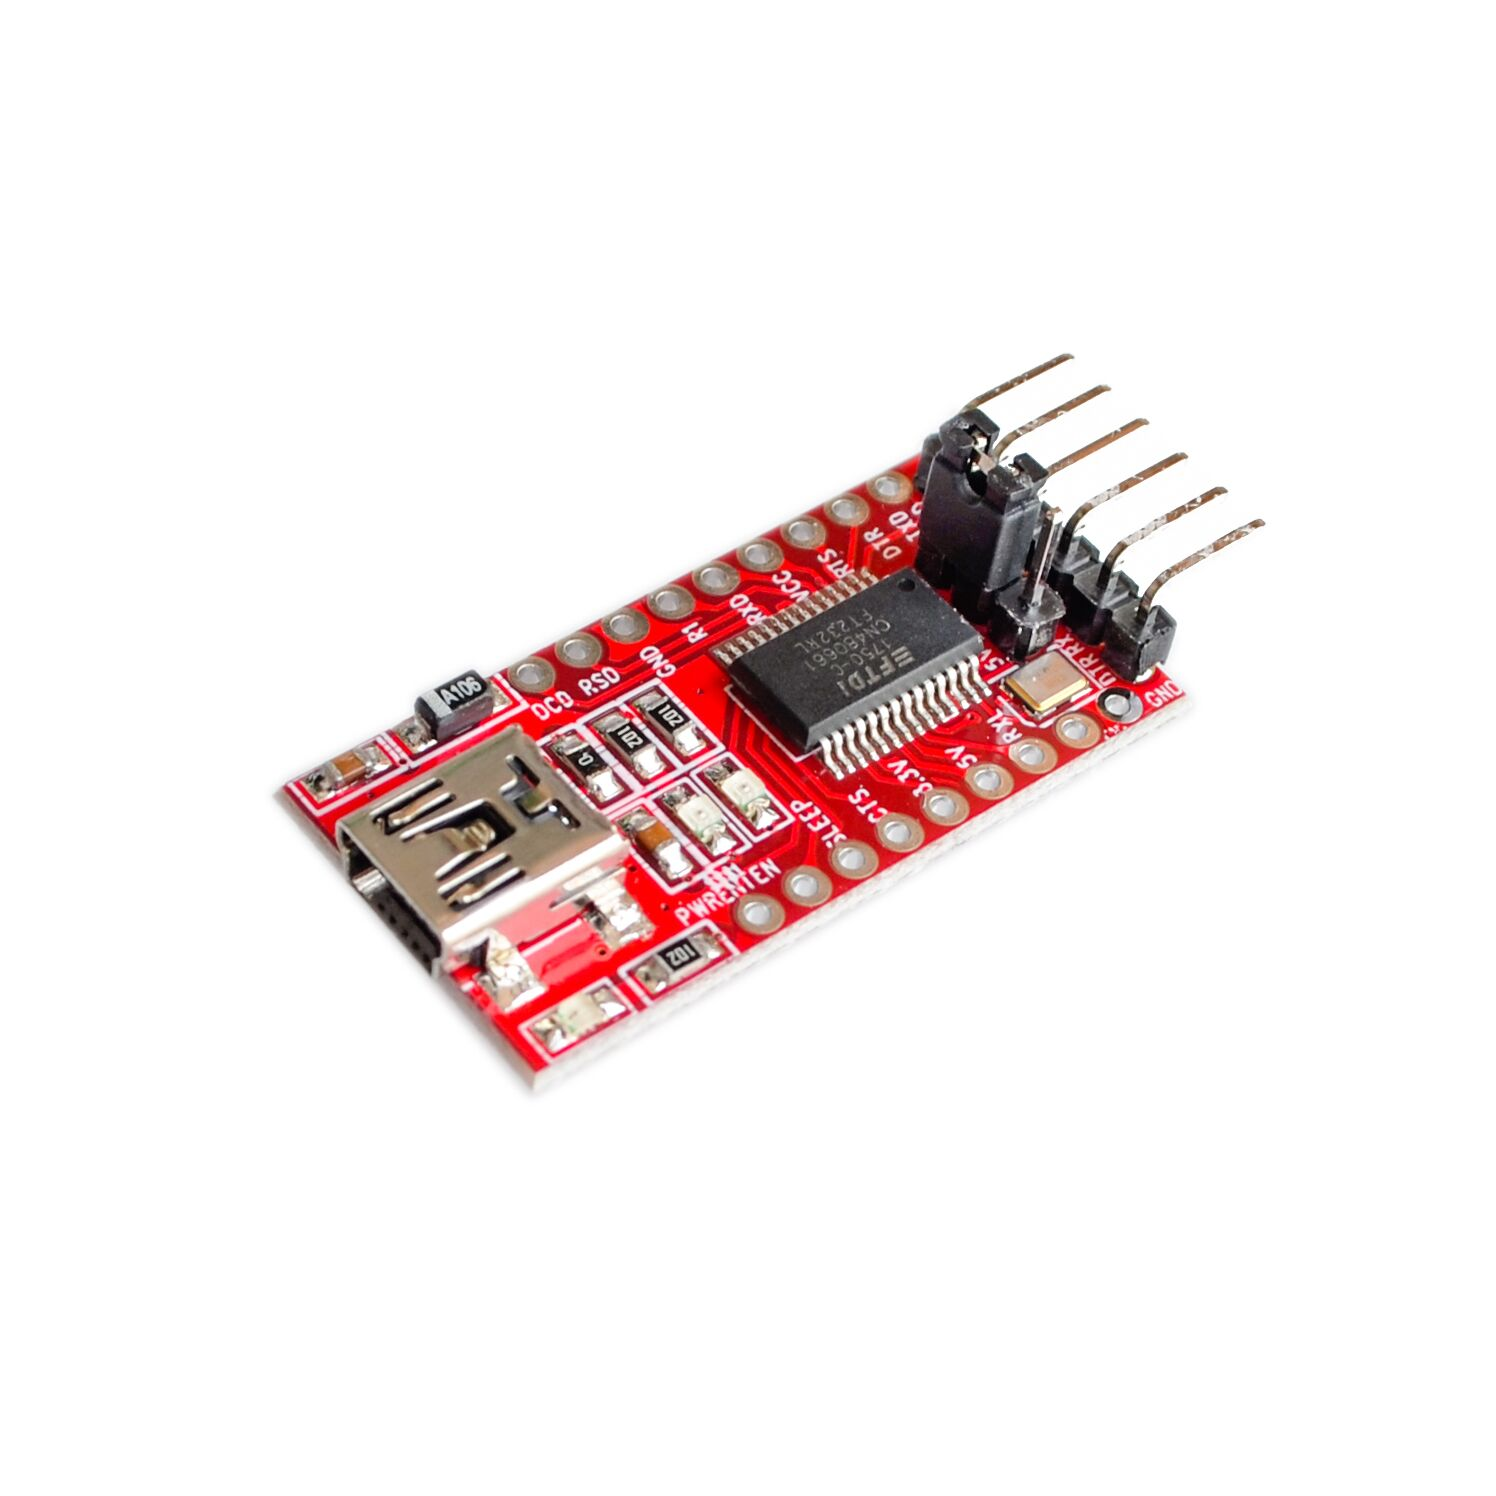 FT232RL FT232 USB TO TTL 5V 3.3V Download Cable To Serial Adapter Module  USB TO 232